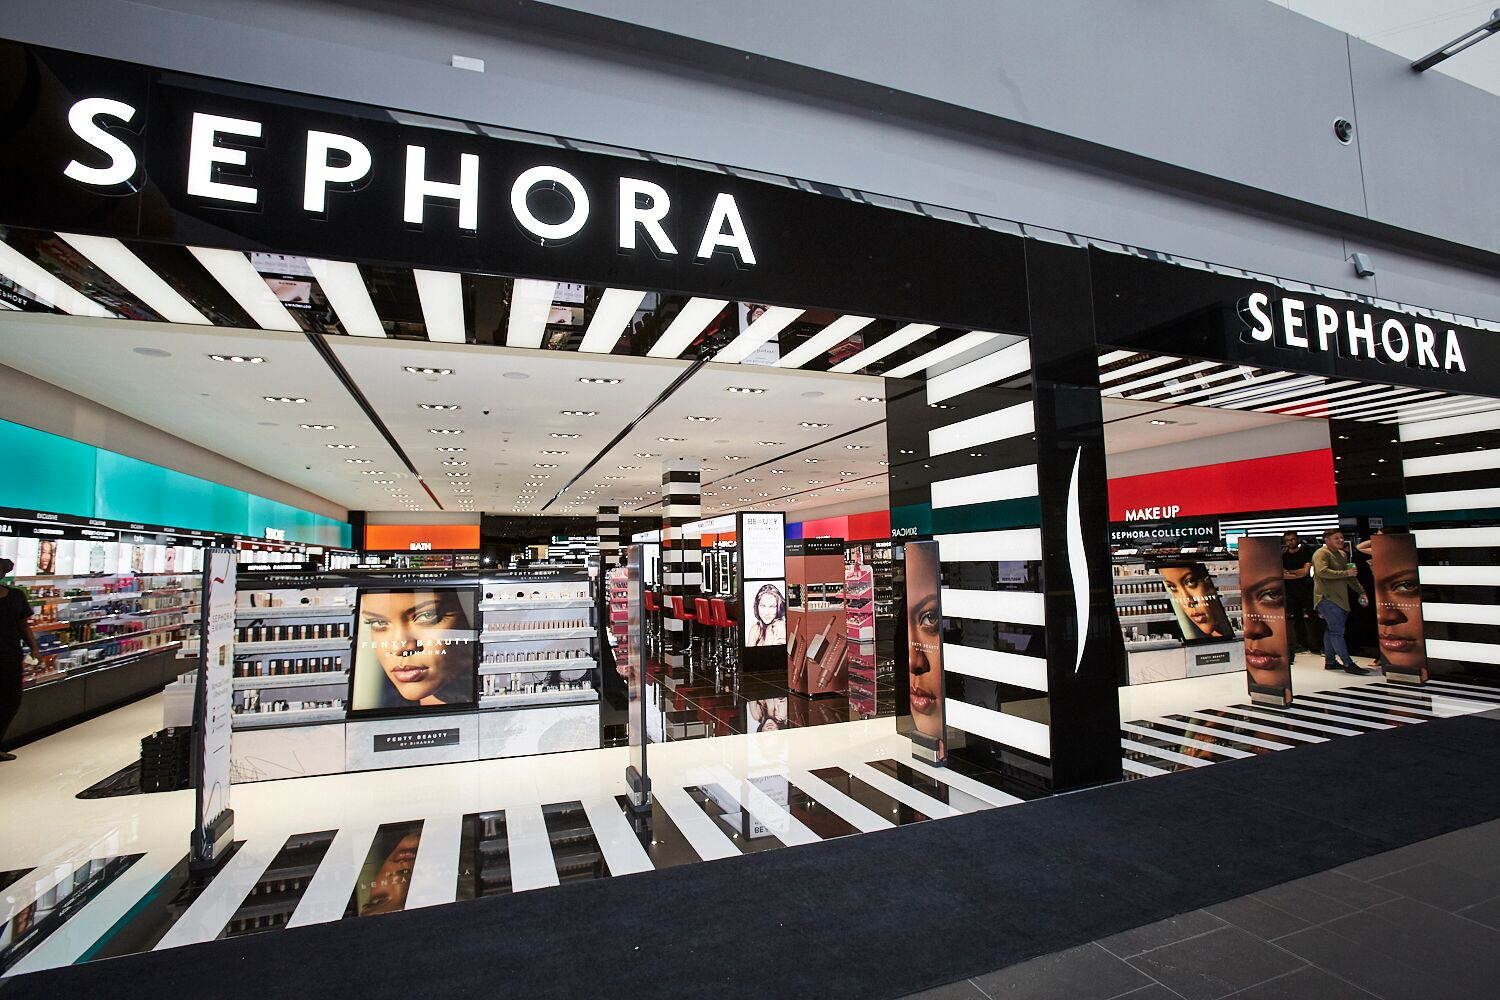 Sephora: Augmented Reality, Artificial Intelligence